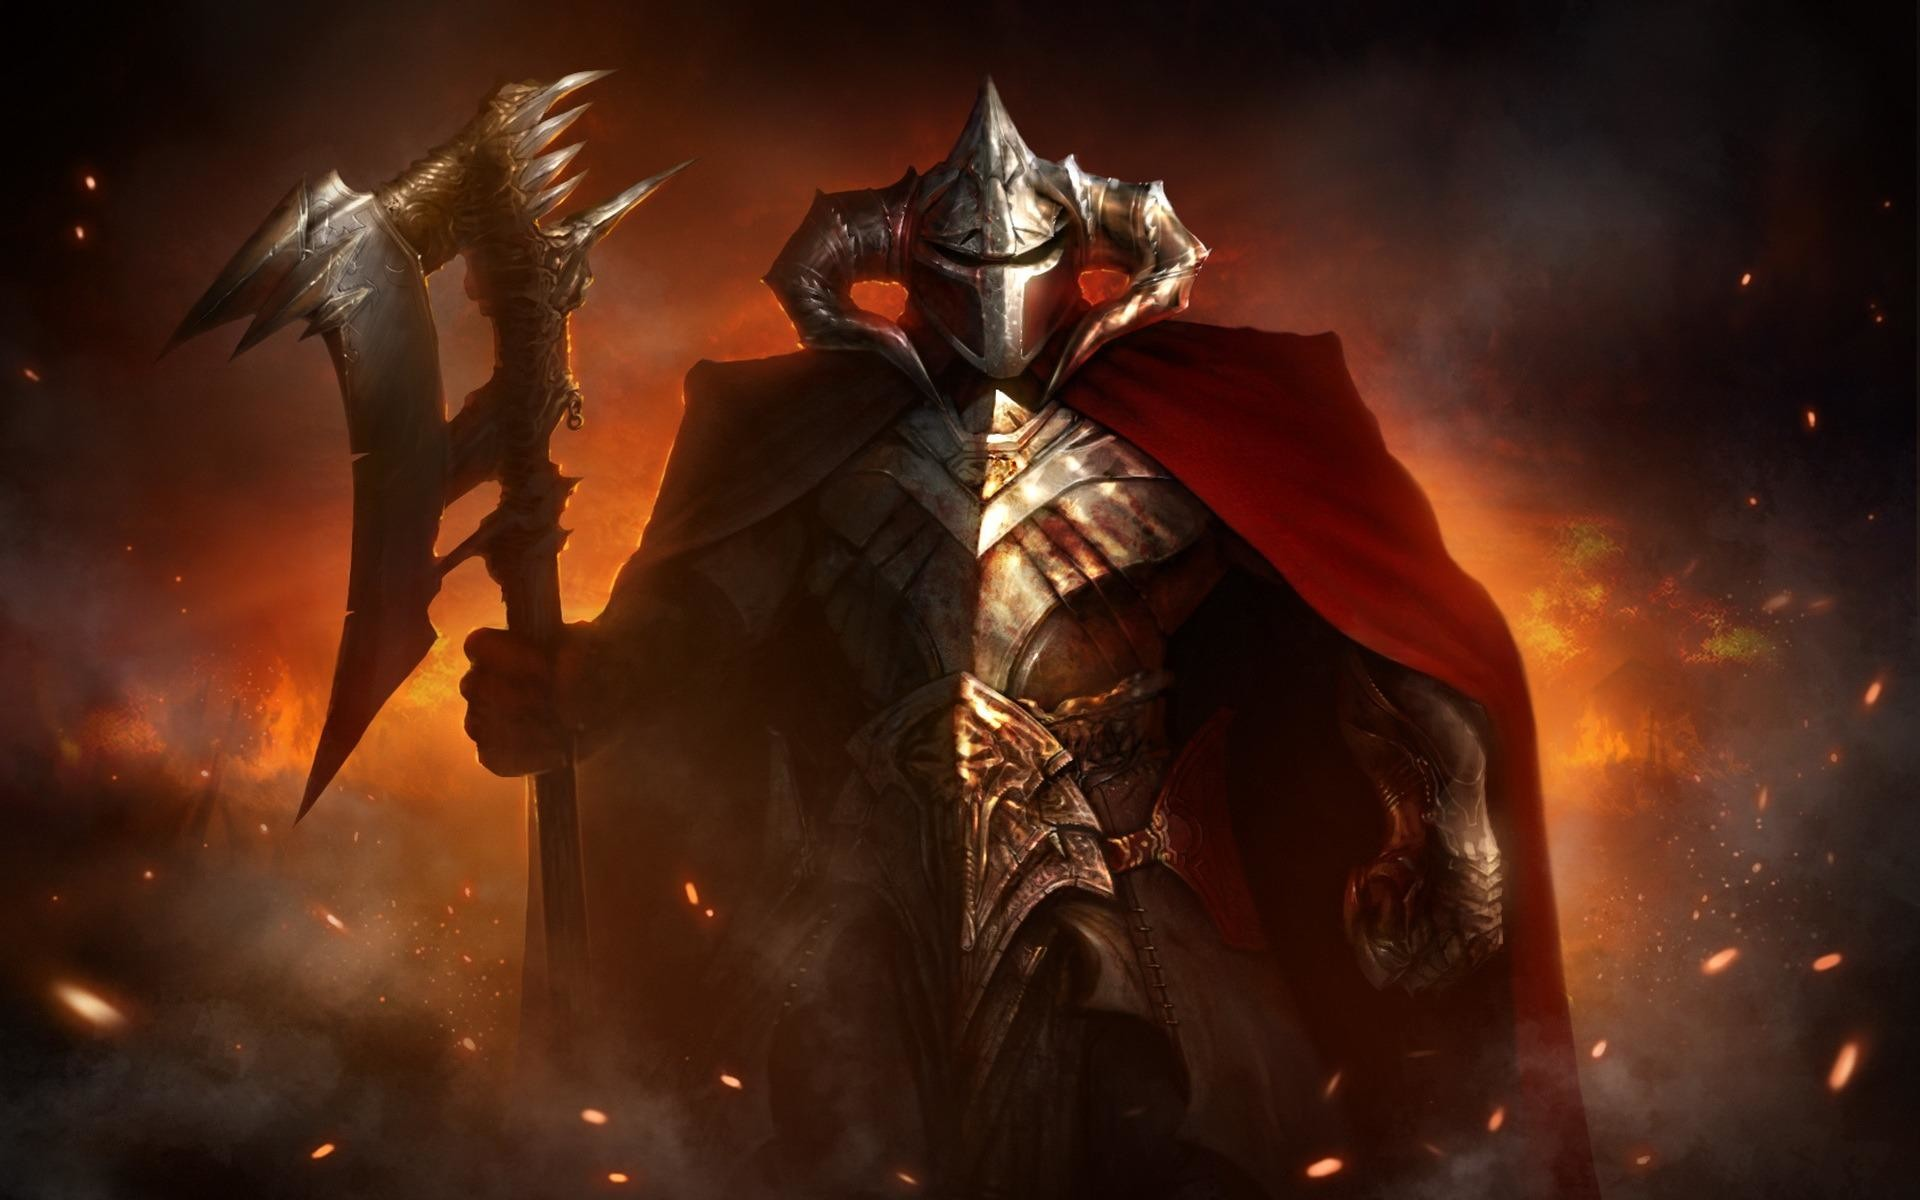 How To Make Live Wallpaper Work Iphone X Medieval Black Knight Wallpaper 183 ①